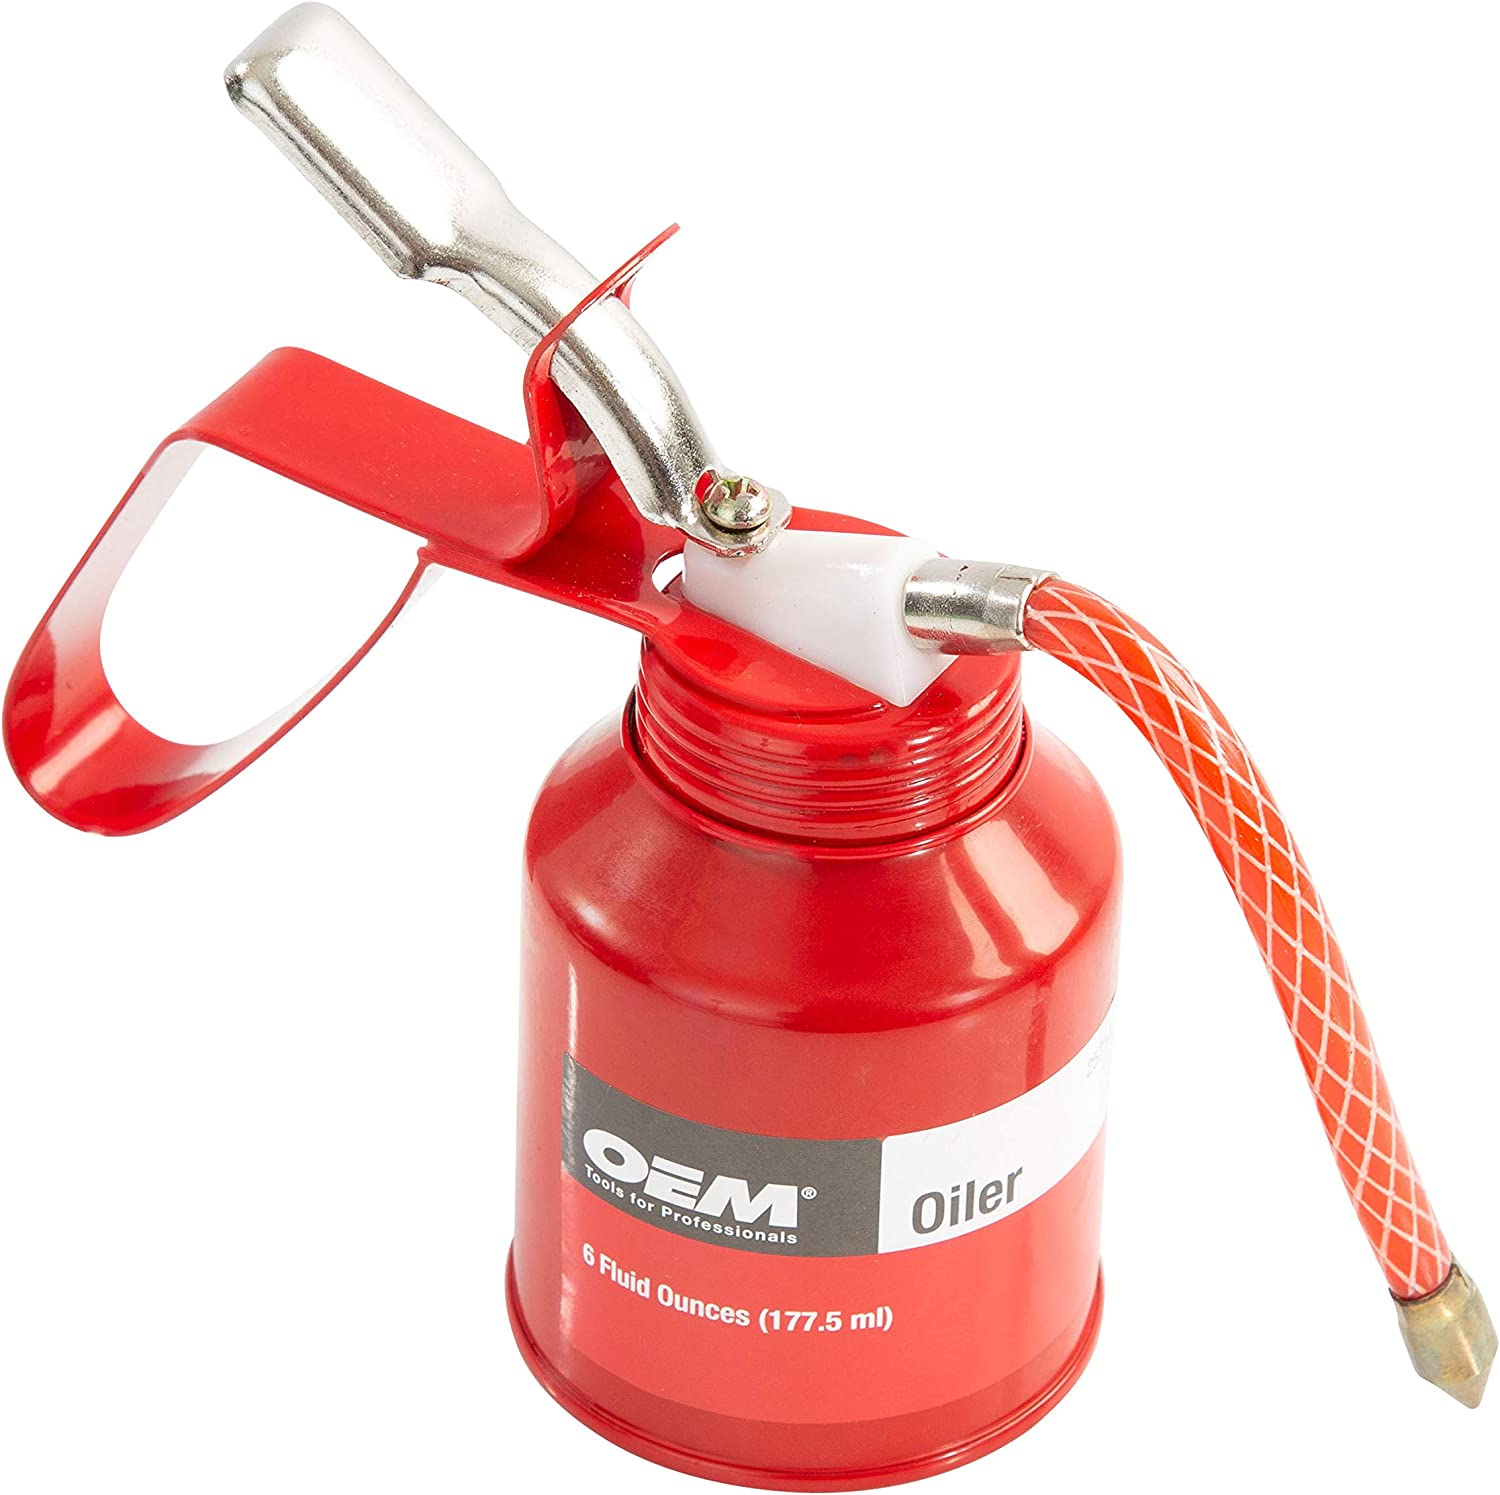 OEM TOOLS Sale special price 25714 6-Ounce Pump Oil Ha Year-end annual account Can Gun Spout Flexible